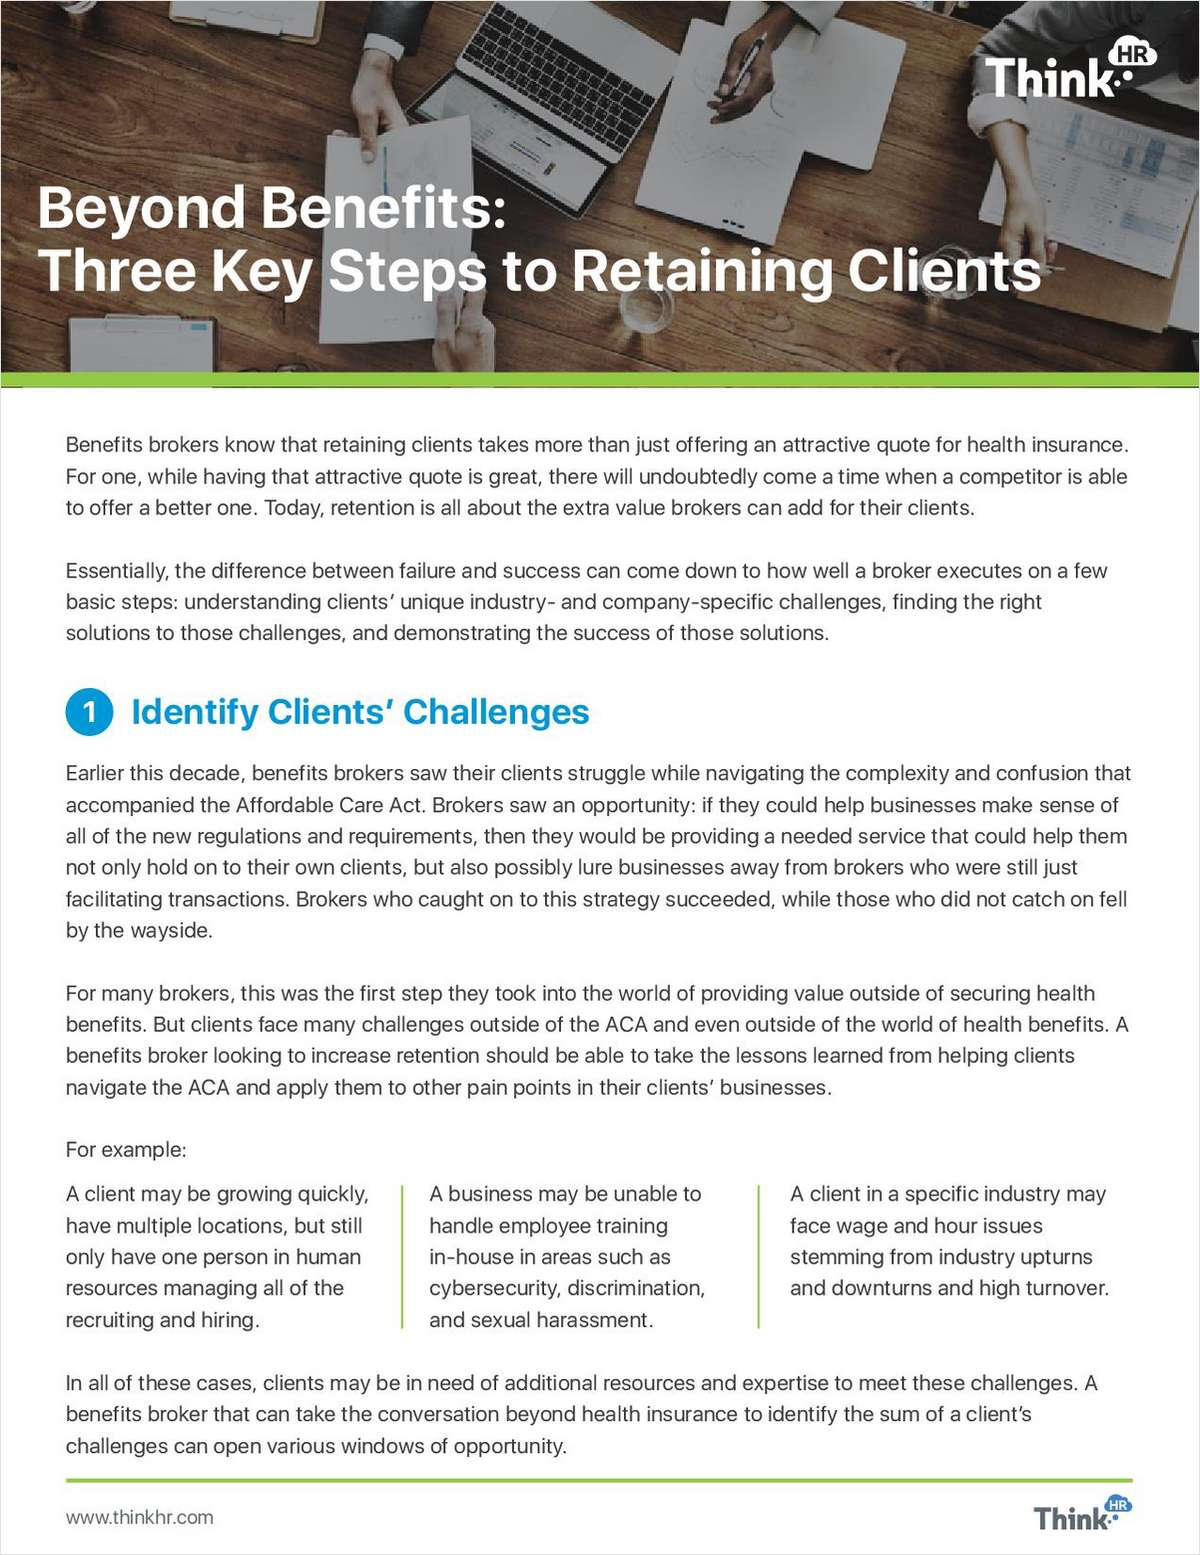 3 Key Steps to Retaining Clients